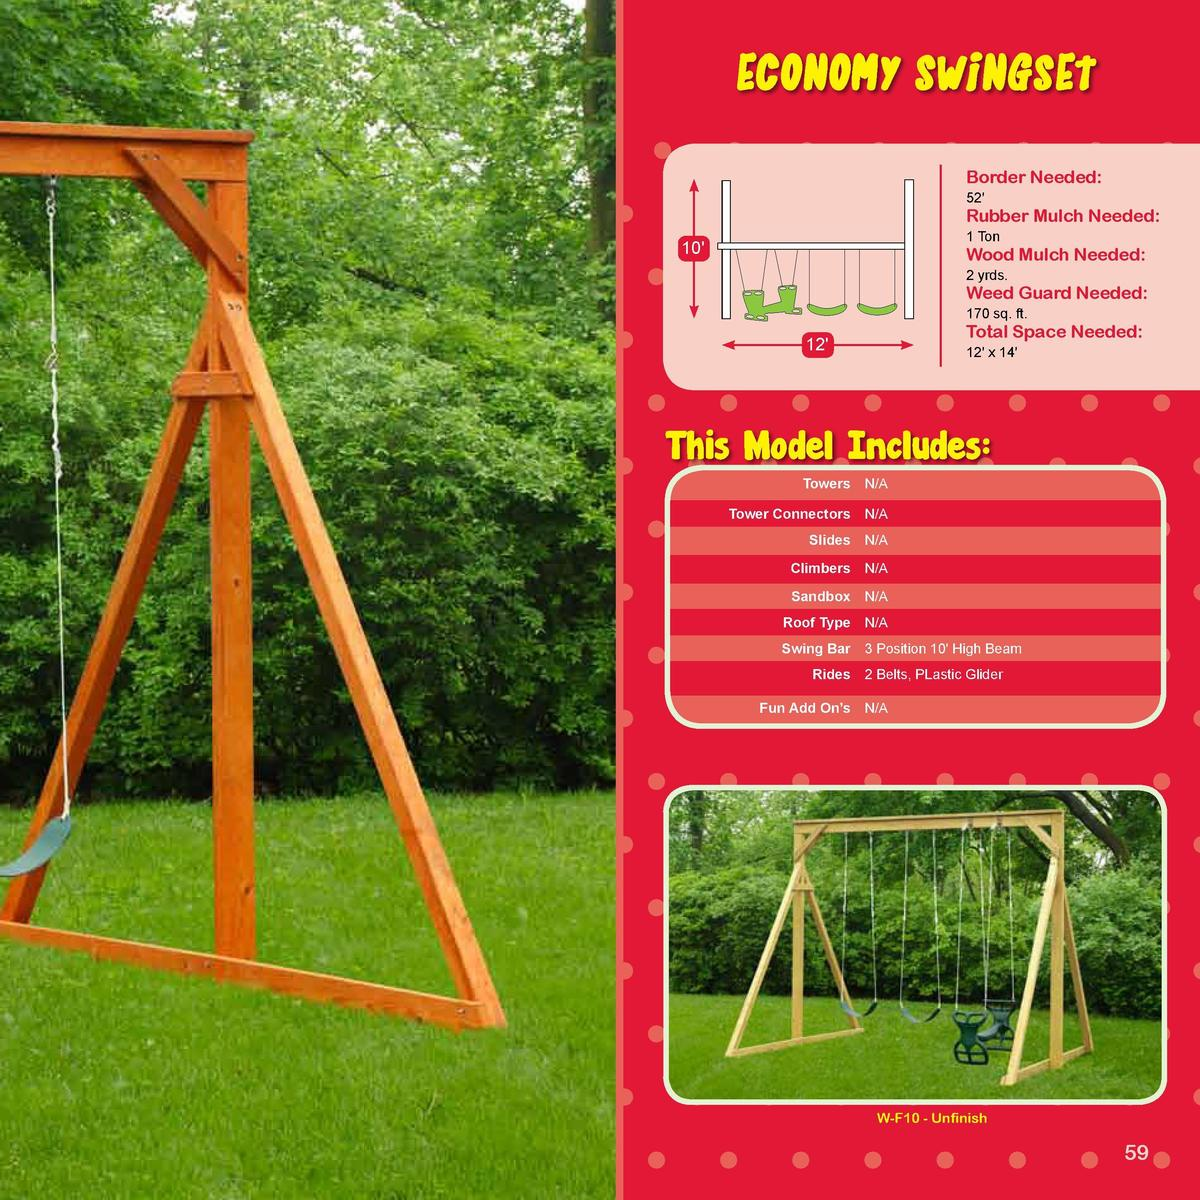 TEDDY BEAR SERIES  ECONOMY SWINGSET  -SERIES-  Border Needed   52 Space Needed Rubber Mulch Needed   1 Ton  10   Wood Mulc...